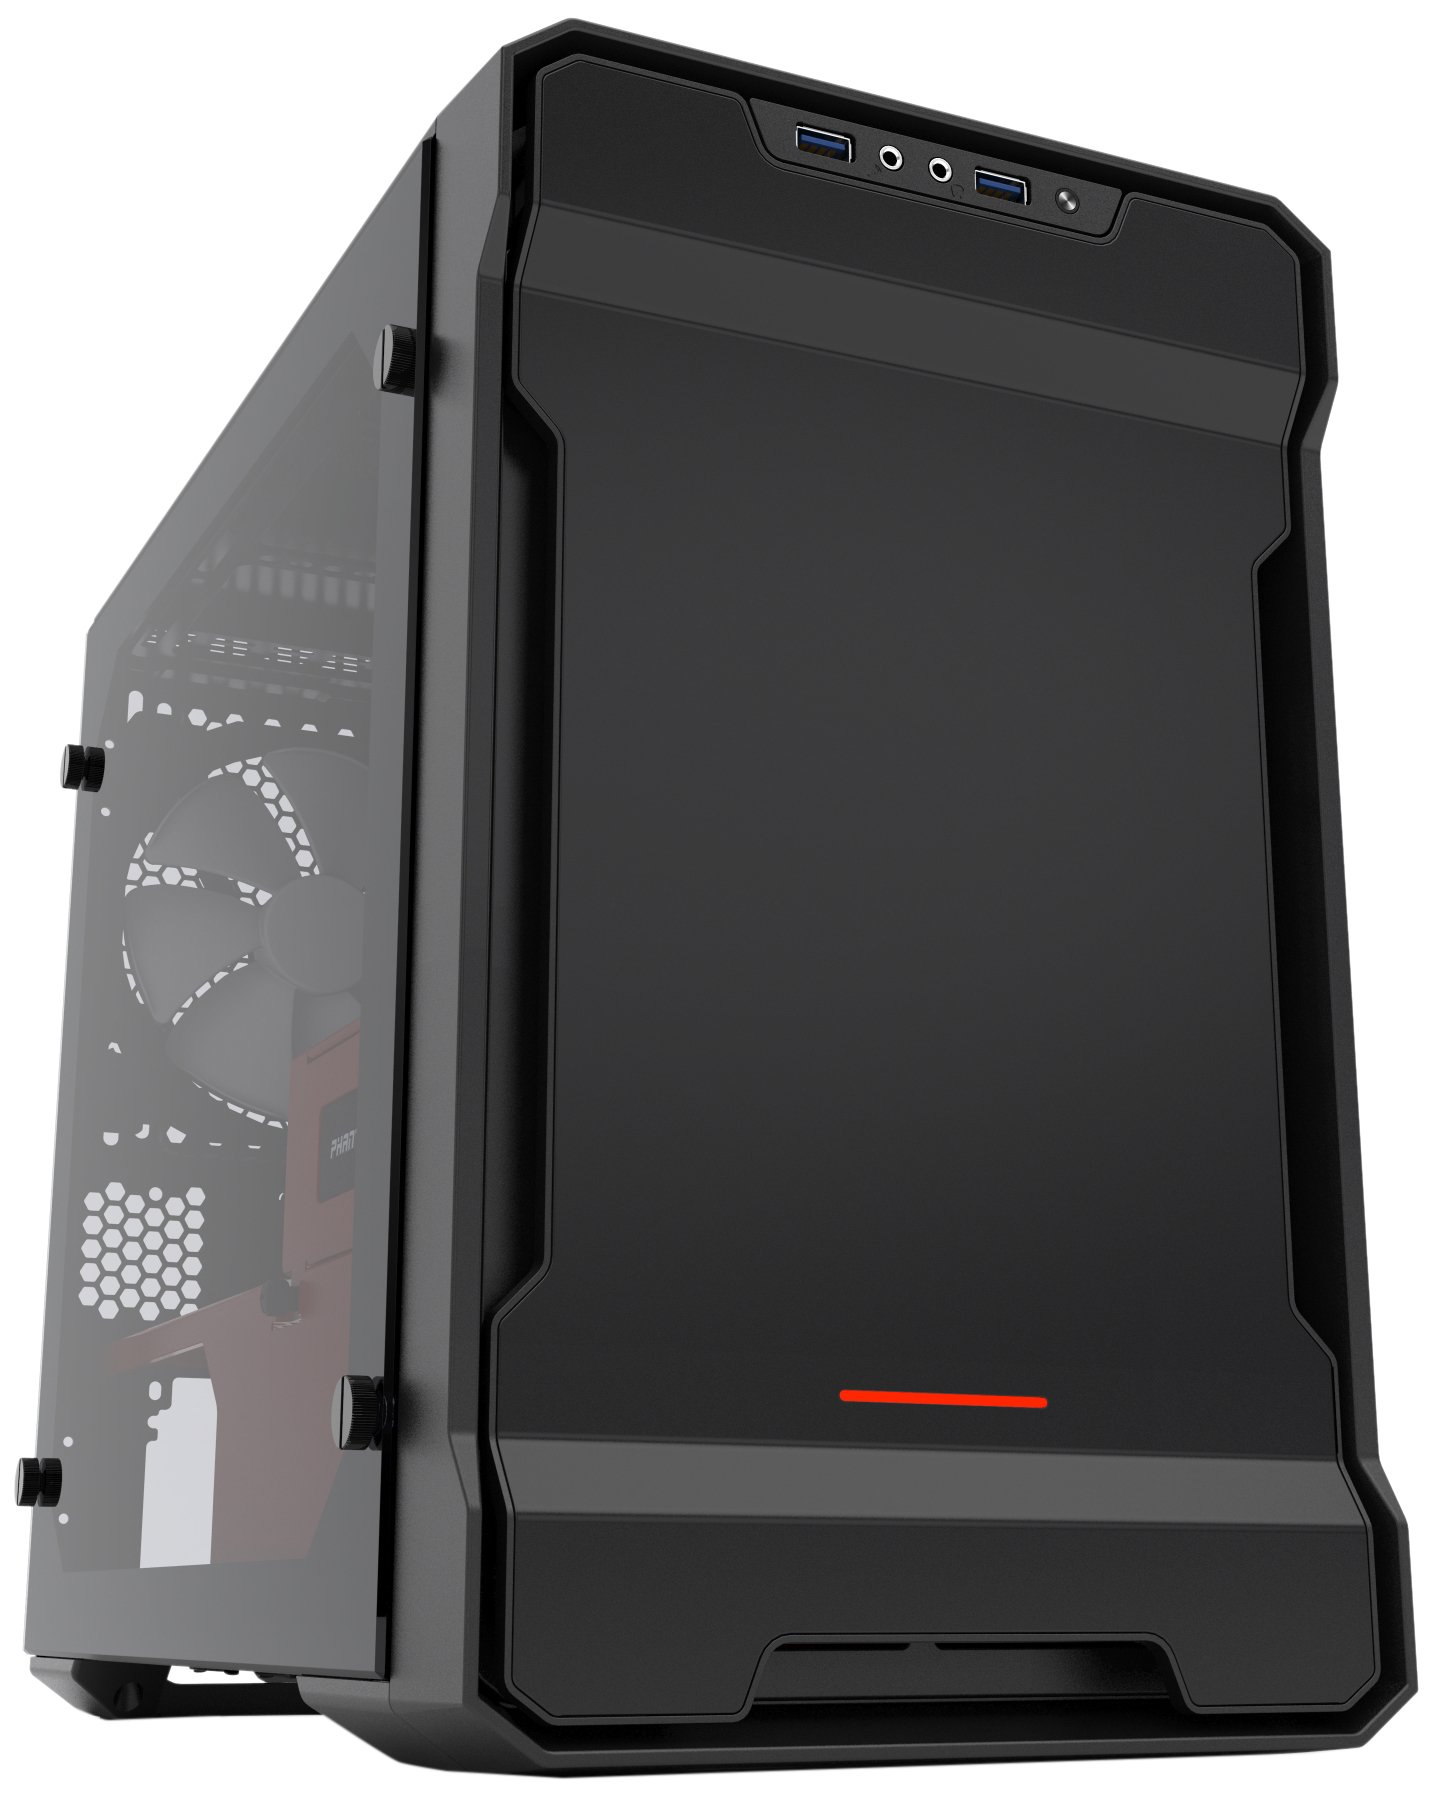 Phanteks Enthoo Evolv ITX Tempered Glass (PH-ES215PTG_SRD), Clean and Compact, Water Cooling Ready, Black/Red by Phanteks